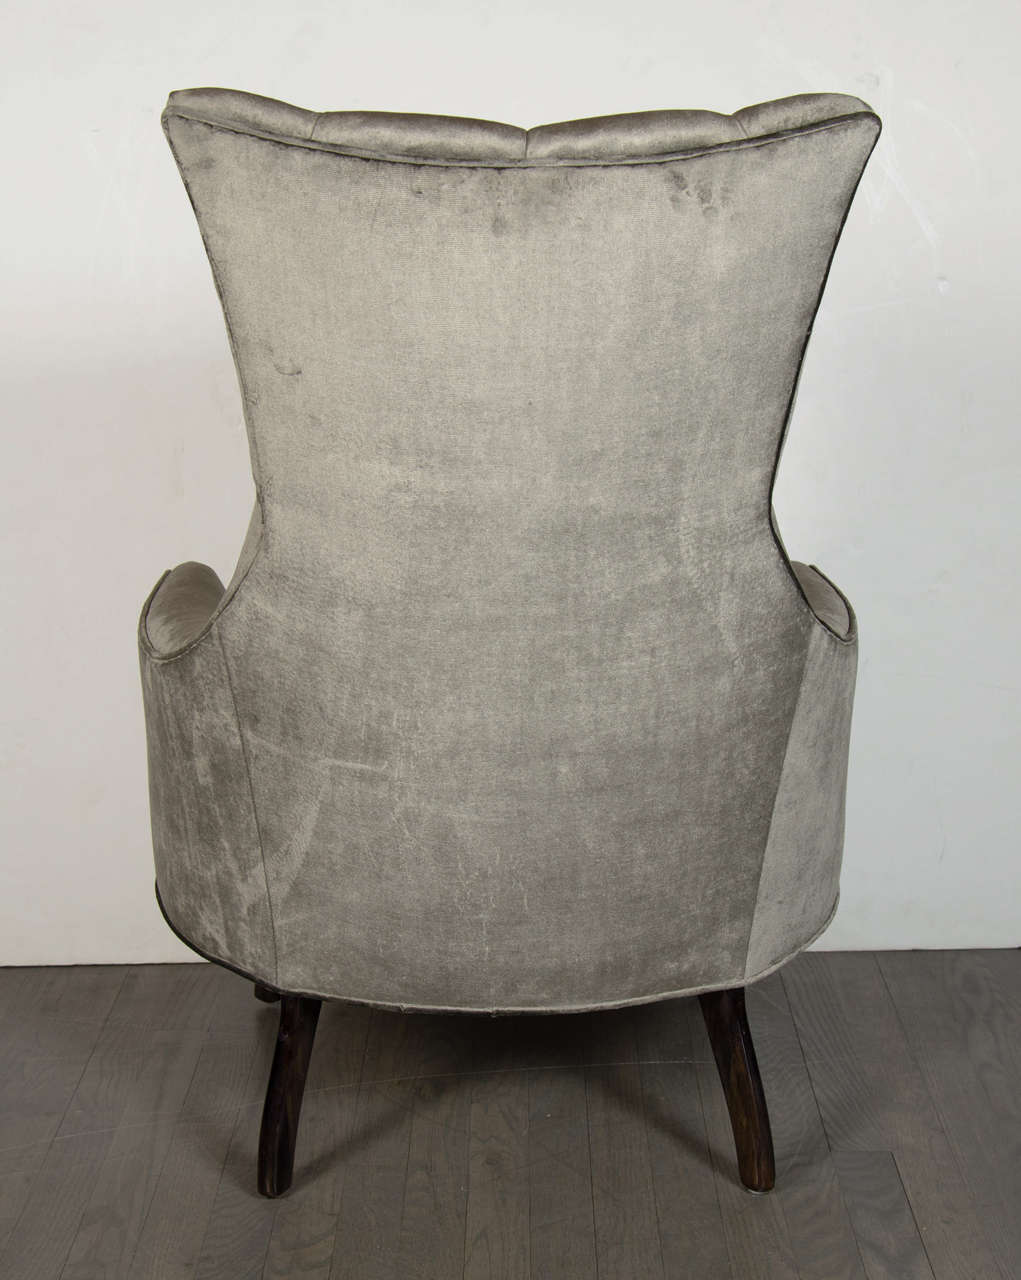 Pair of Mid-Century Modern Tufted High-Back Chairs in Smoked Platinum Velvet In Excellent Condition For Sale In New York, NY